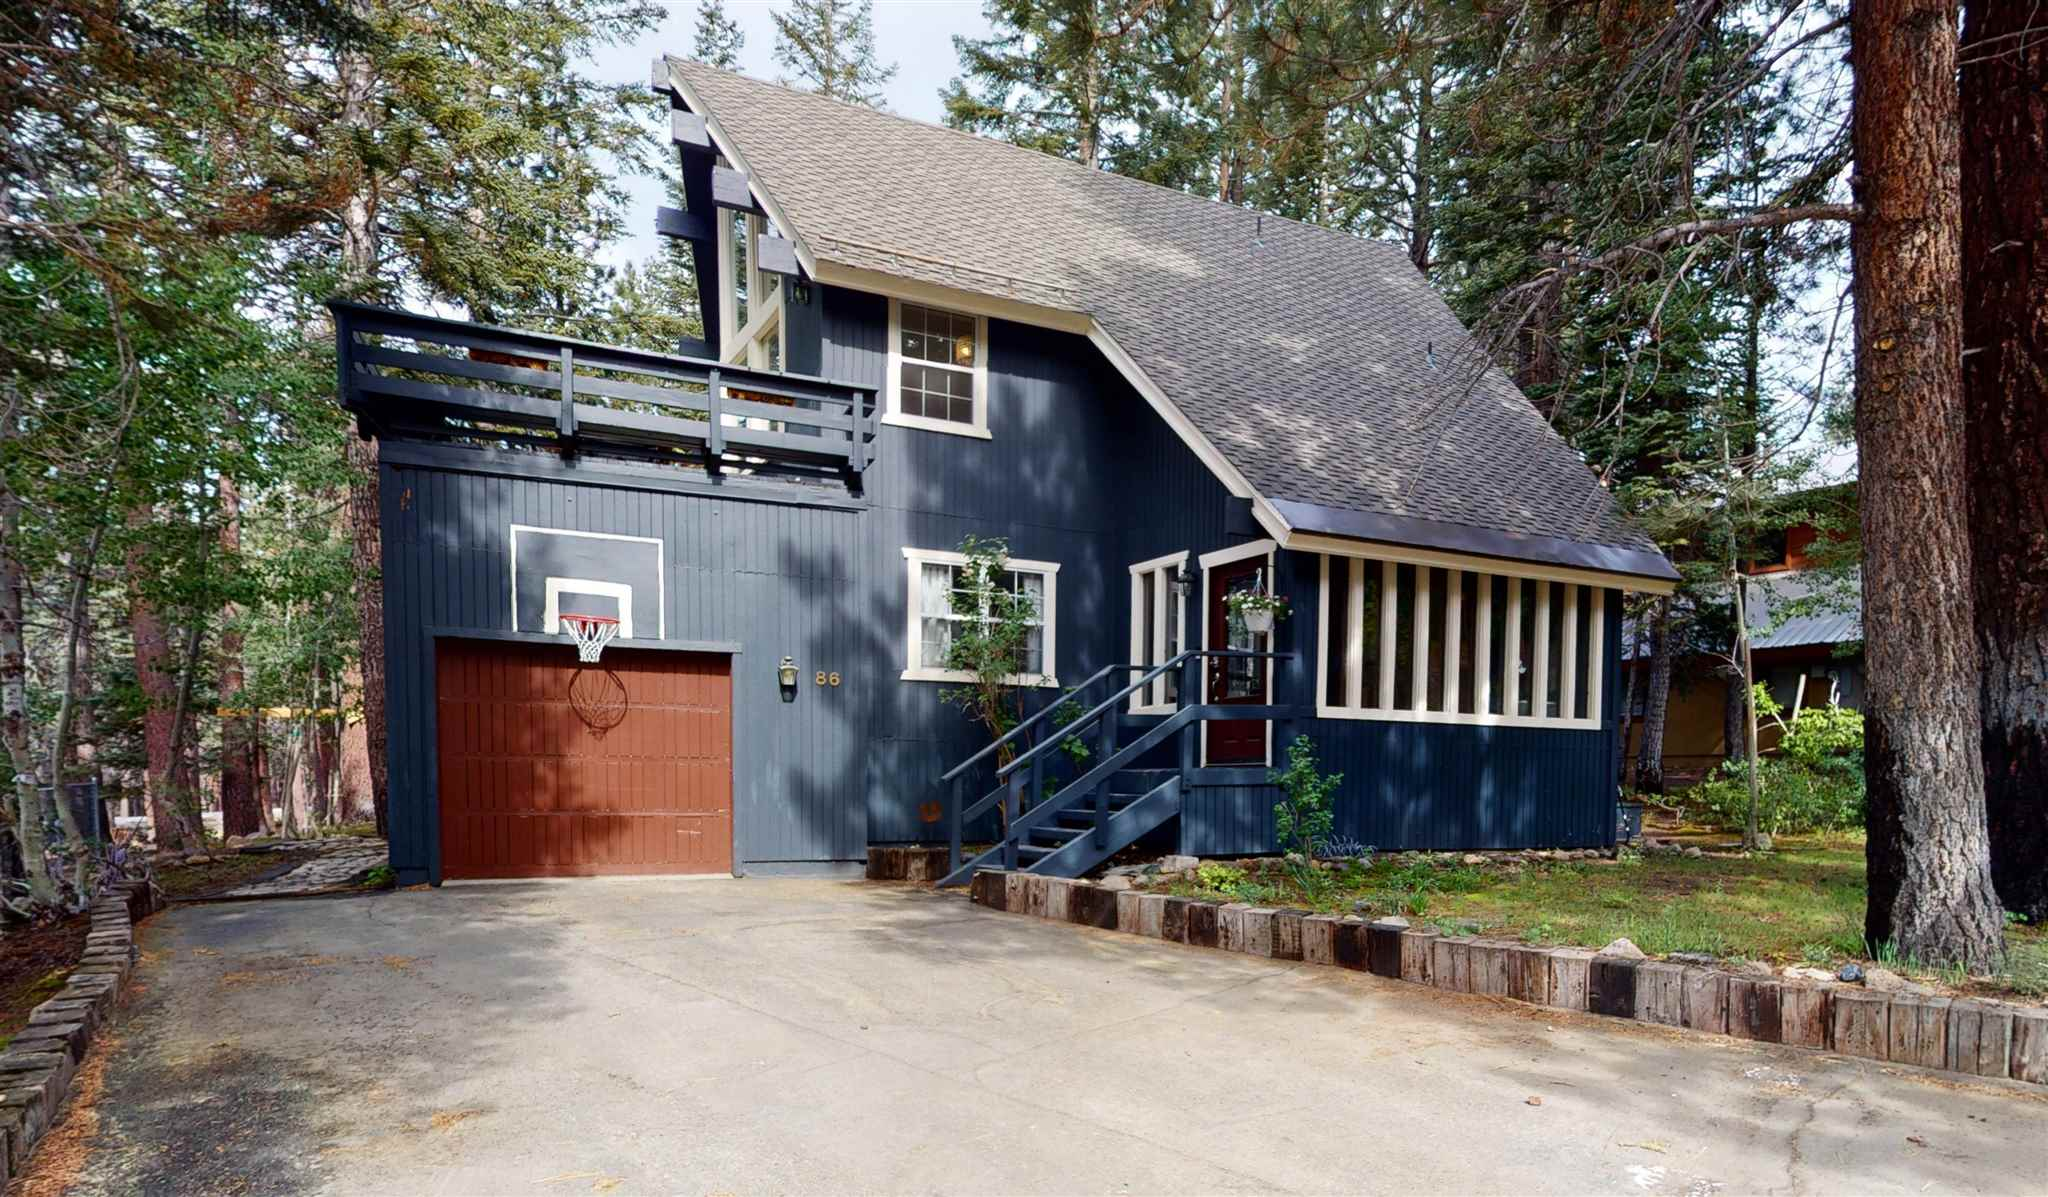 Village adjacent location and treed forest views! Well maintained 3 bedroom plus loft home with 3 full bathrooms located in the highly desired Mammoth Knolls neighborhood. Walk to the Village to enjoy the shops, restaurants, or jump on the gondola to go skiing. In the summer you have easy access to the shuttle hub at the Village to go around town and mountain biking. Sunny bright open floor plan with huge windows and beamed vaulted ceilings in the living room and loft. Enjoy summer dinners on the large upper deck, or roast smores on the lower deck area overlooking the forested back yard with a horseshoe pit. The upstairs loft can be a sleeping area for kids/ guests, or a bright and sunny office space. The home is equipped with forced heating, a pellet stove in the living room, and a gas fireplace in the downstairs bedroom. There is a newly custom built mud room bench with cubbies along with a new tankless water heater, and new forced heating system. One car garage and additional storage space off the downstairs deck. Don't miss this opportunity for a home in a prime location to make your own.